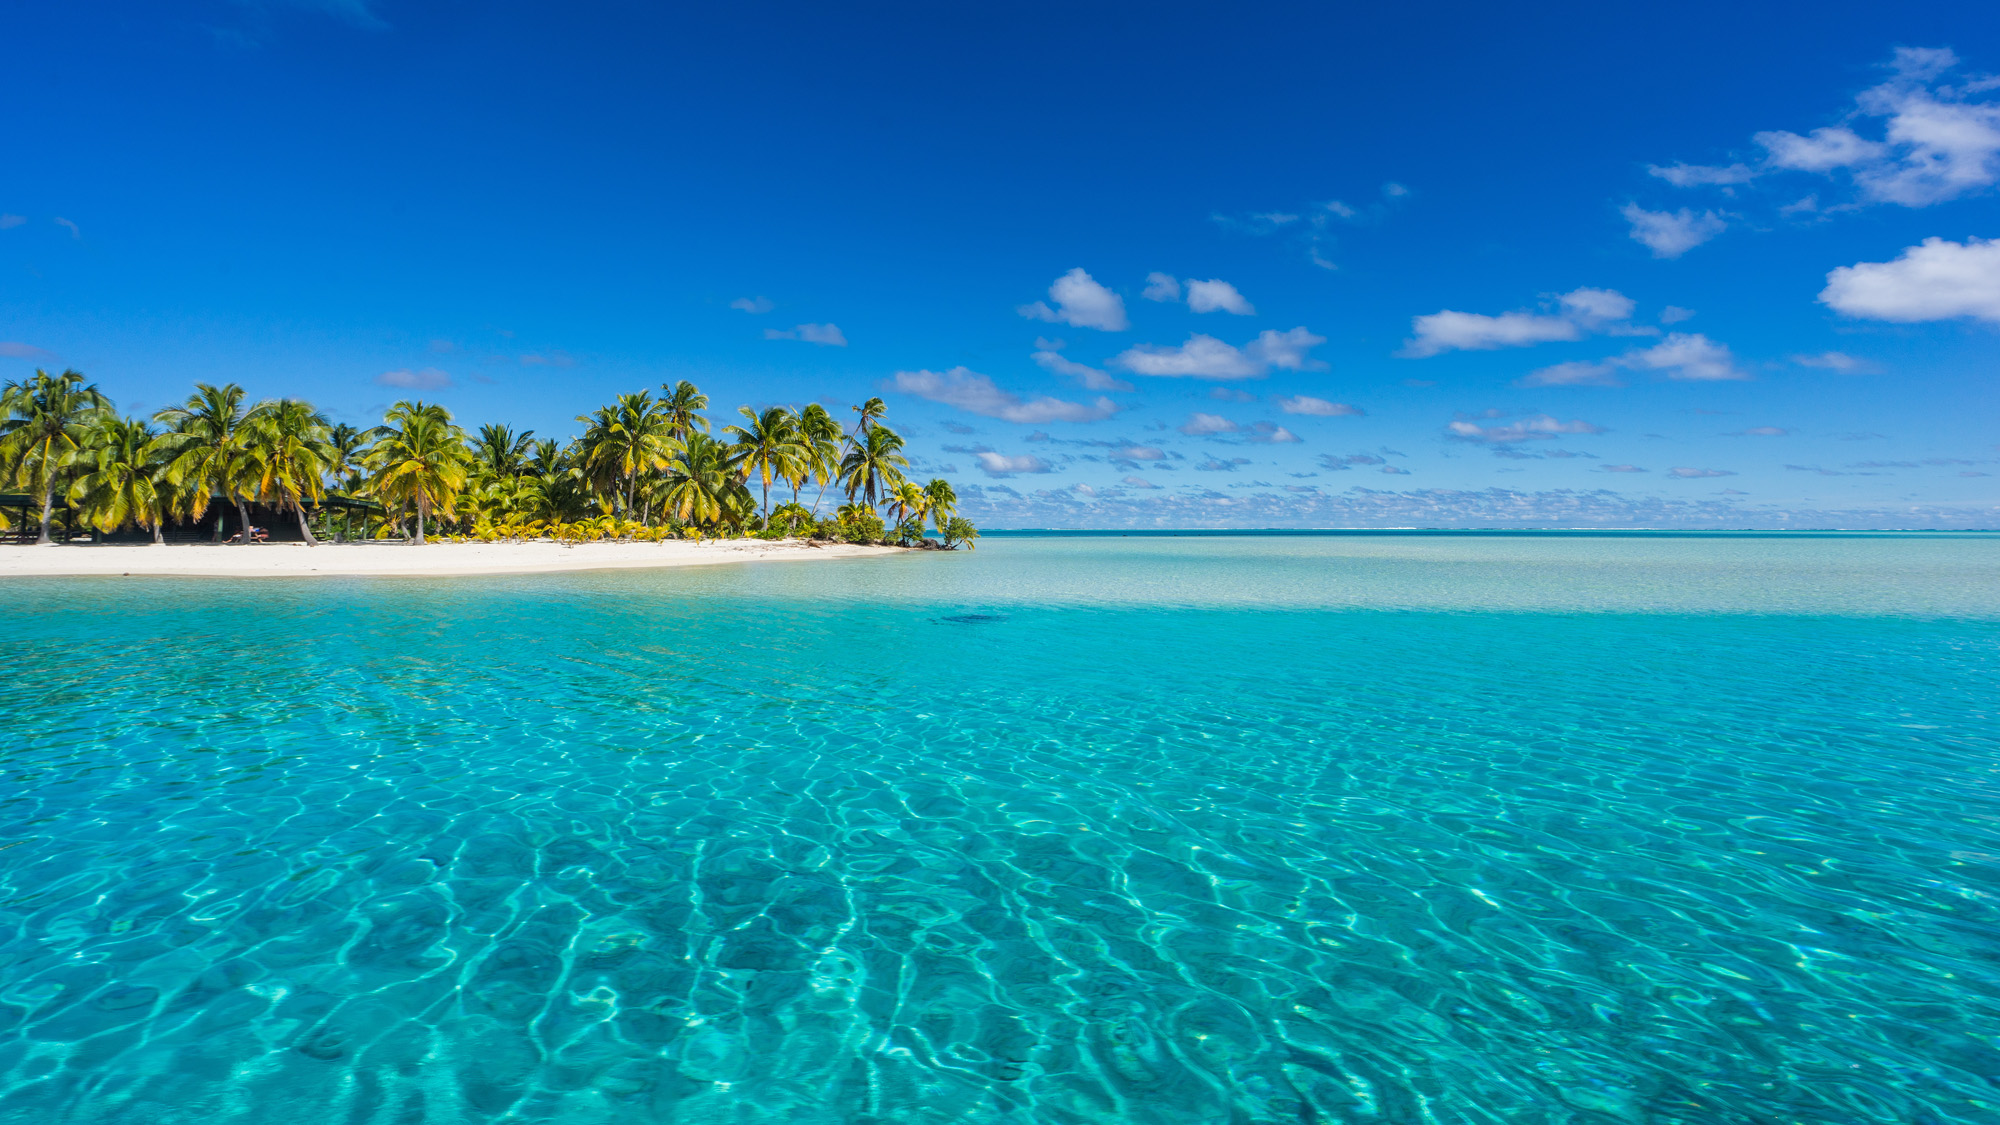 Aitutaki lagoon and one foot island